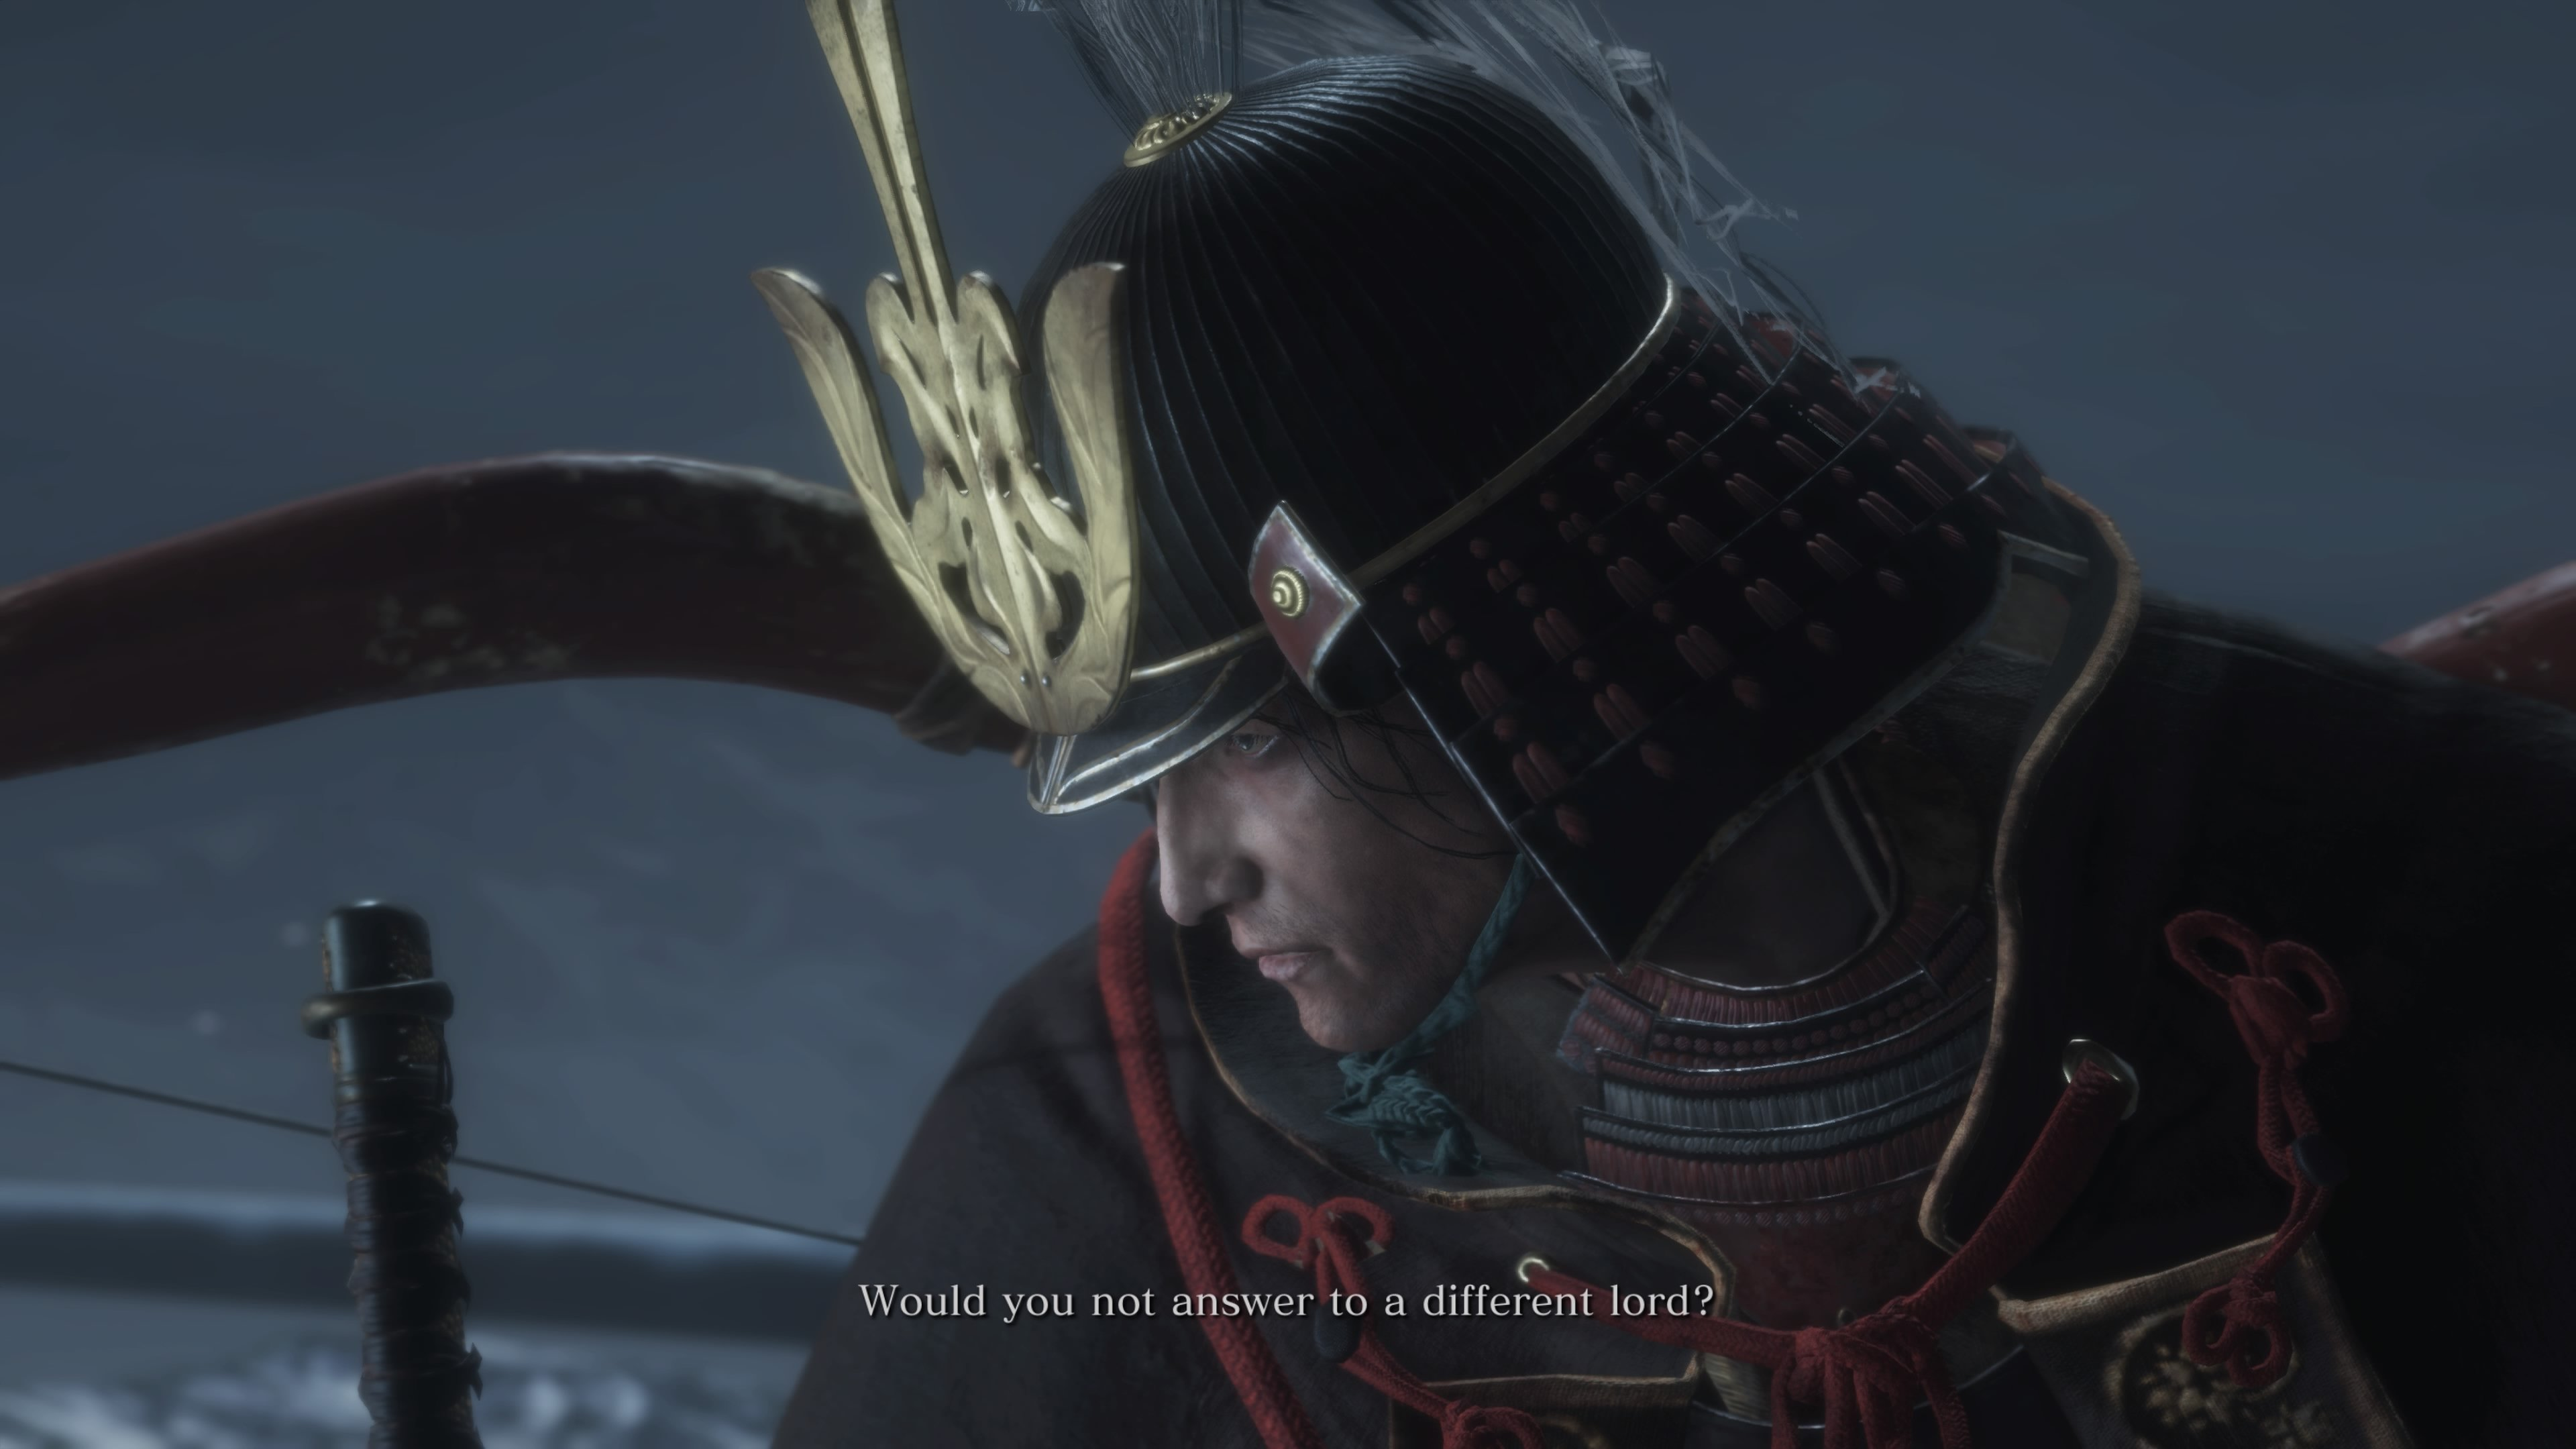 How to beat the Genichiro Ashina boss fight in Sekiro: Shadows Die Twice - Genichiro Ashina speak to Wolf